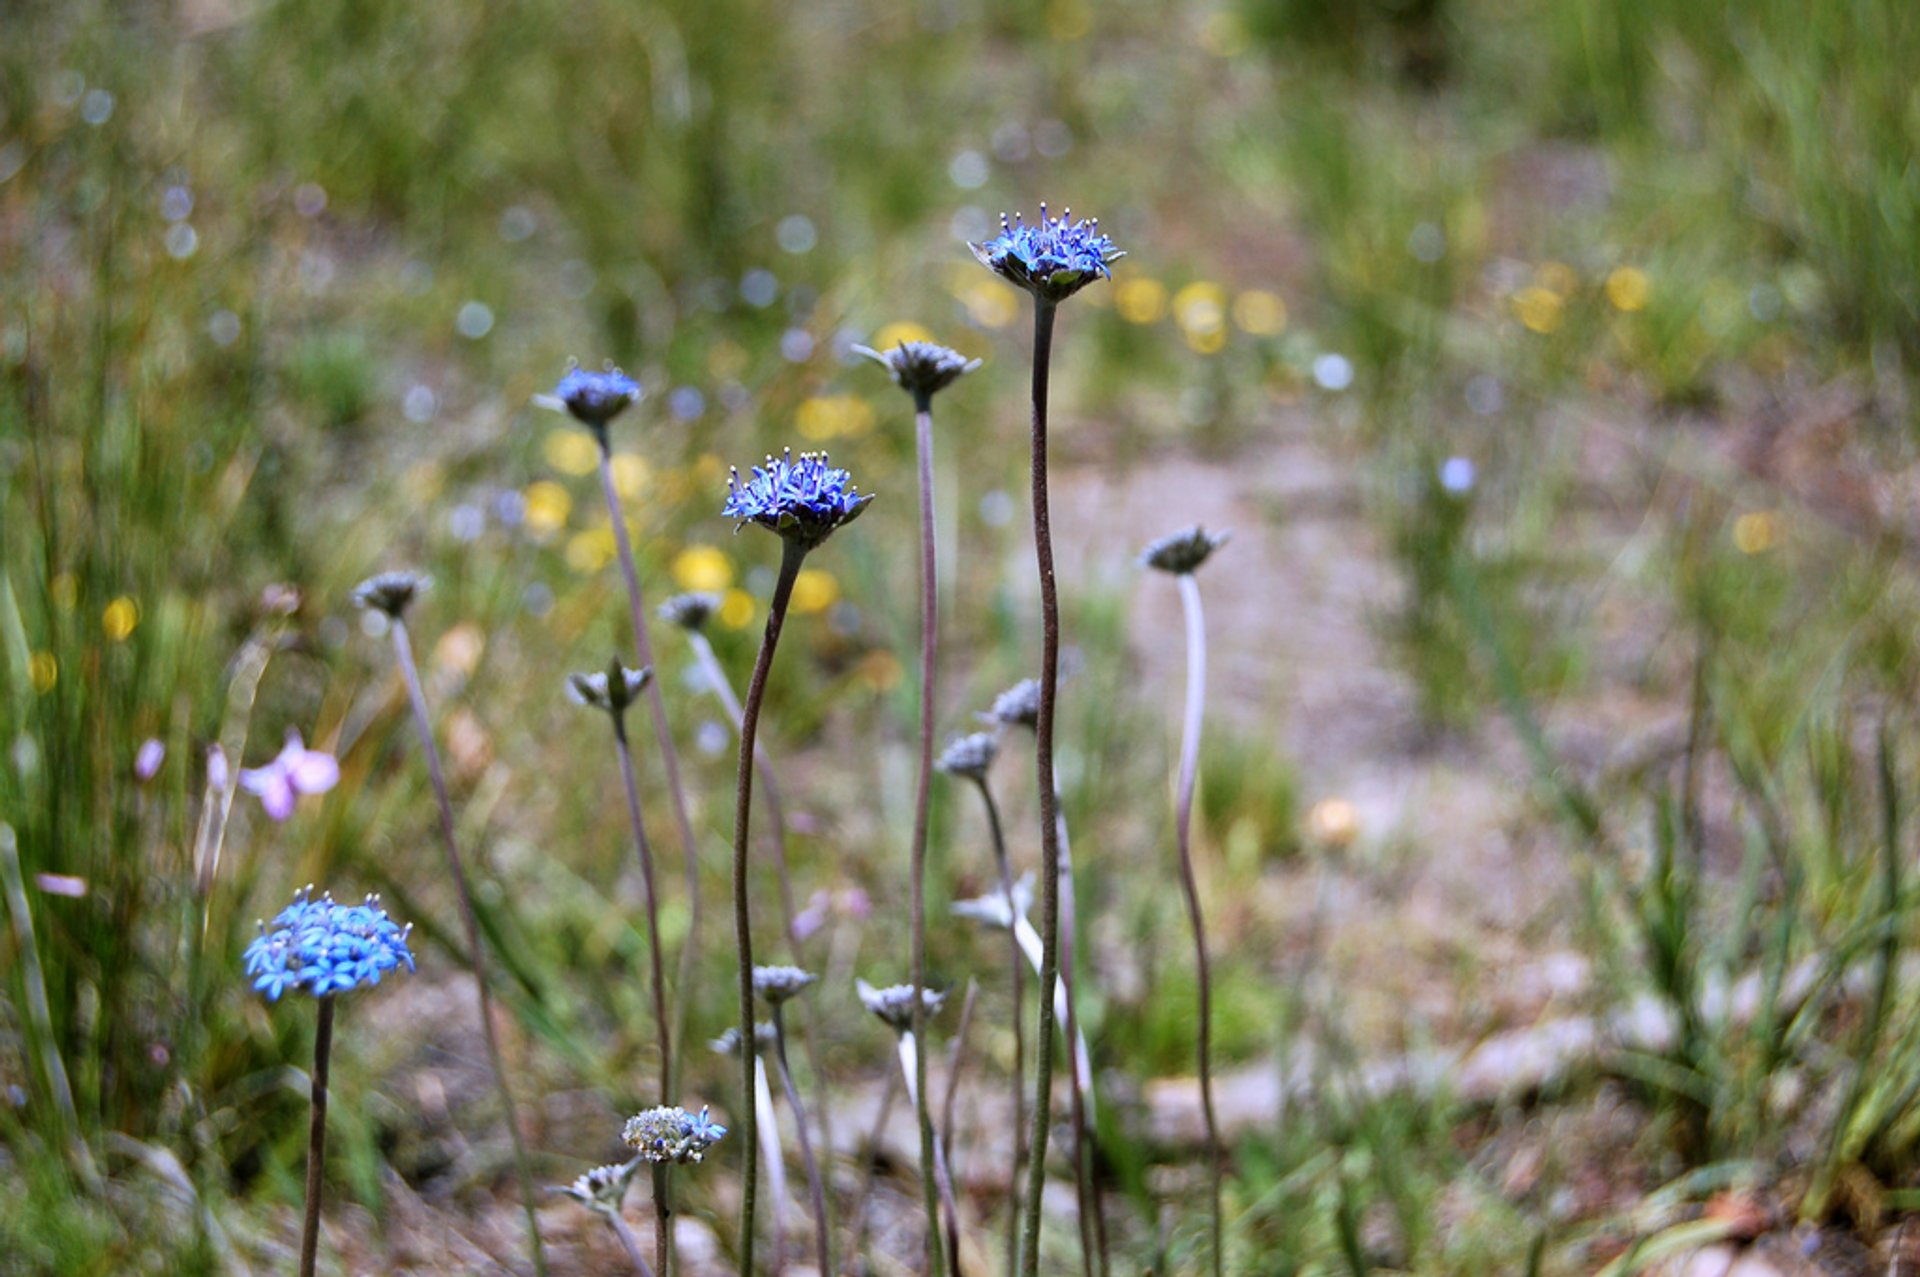 Blue Pincushions in the Brisbane Ranges on a hot day in early November 2020